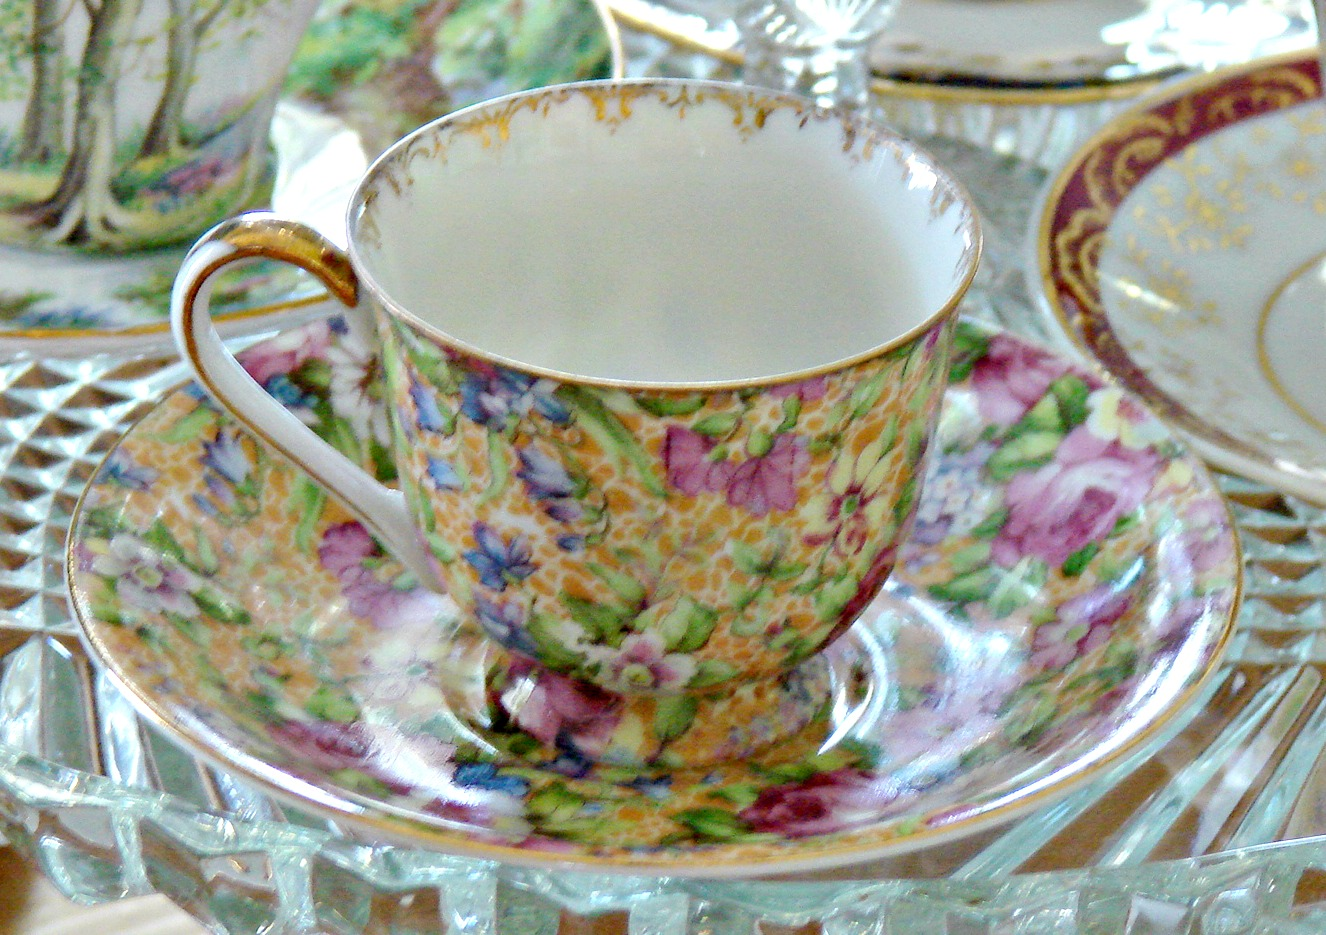 dating occupied japan You can find the date on noritake china by looking at the marks,  marks that say rose china, made in occupied japan and occupied japan date to the  dating.